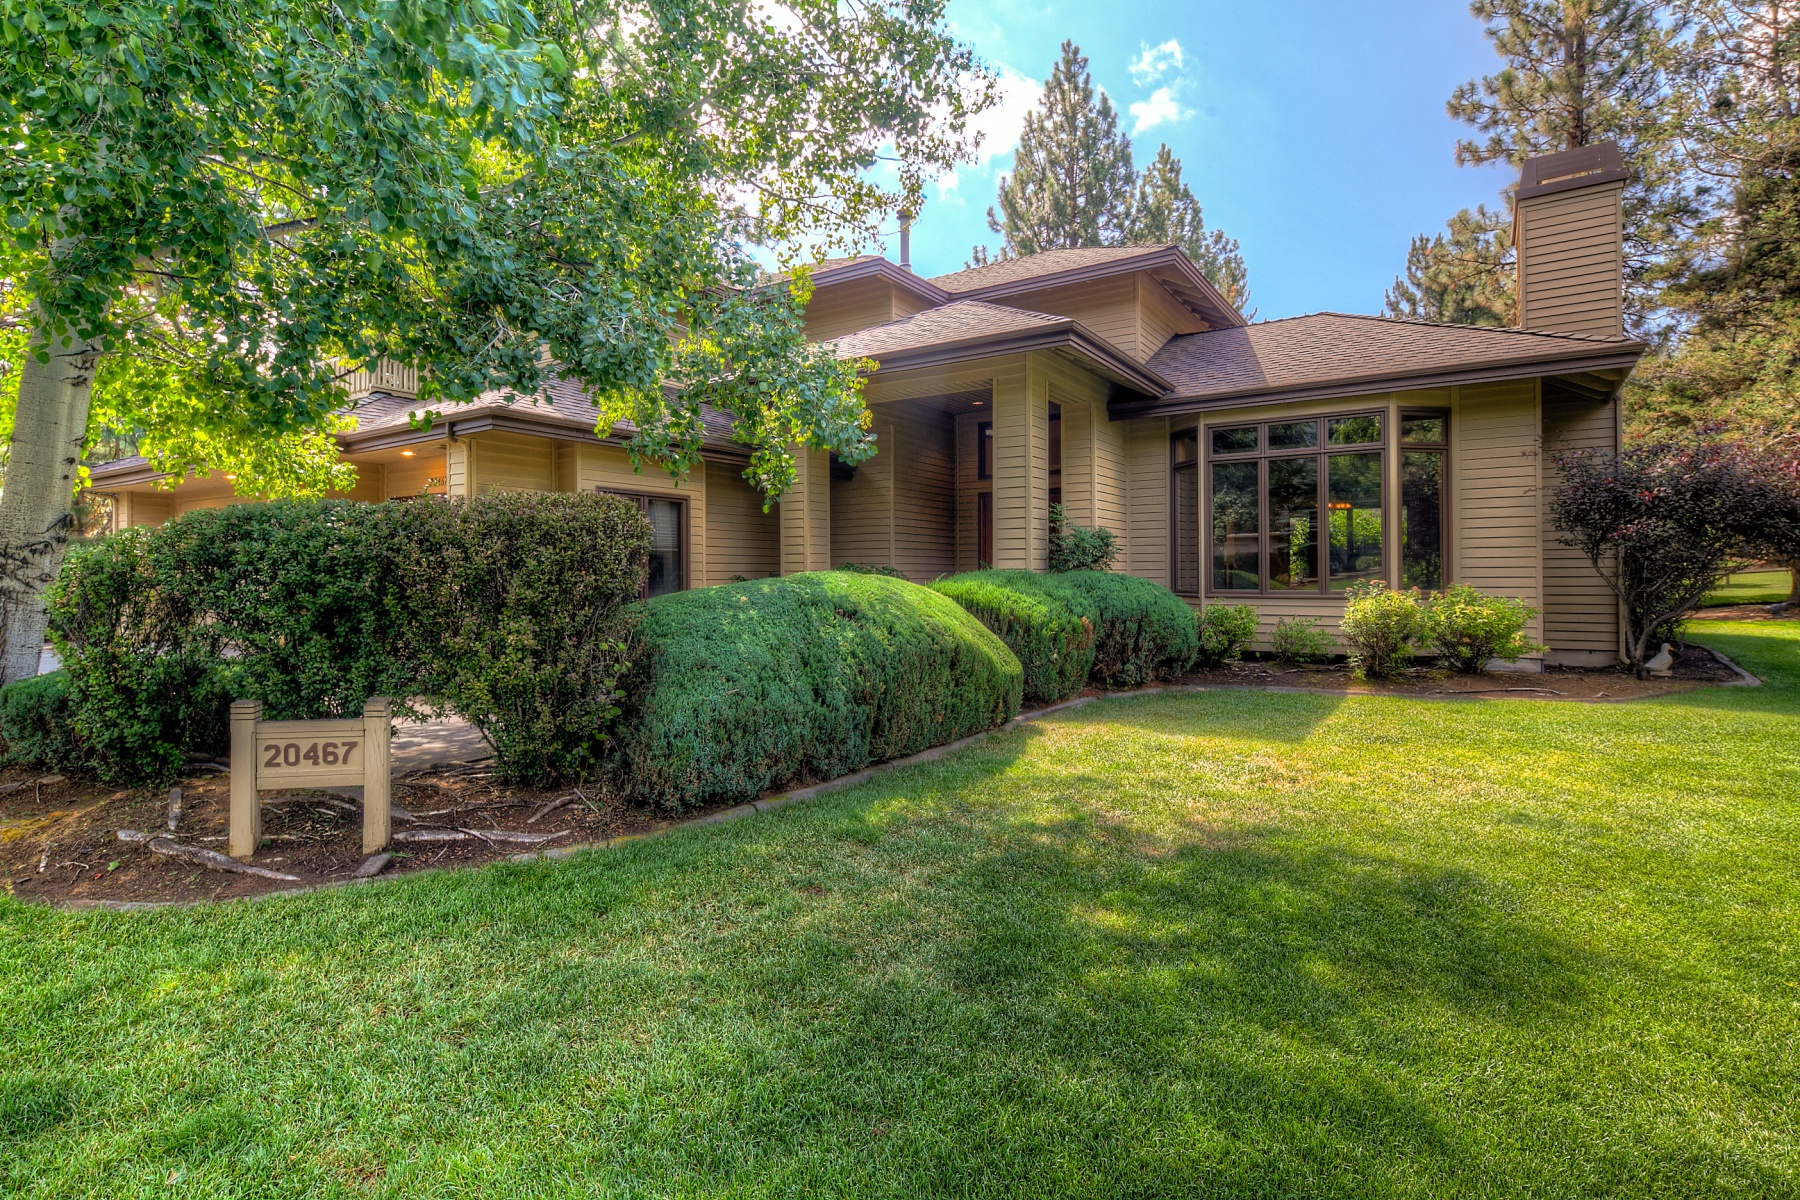 Single Family Home for Sale at 20467 Snowmass, BEND 20467 Snowmass Ct Bend, Oregon 97702 United States